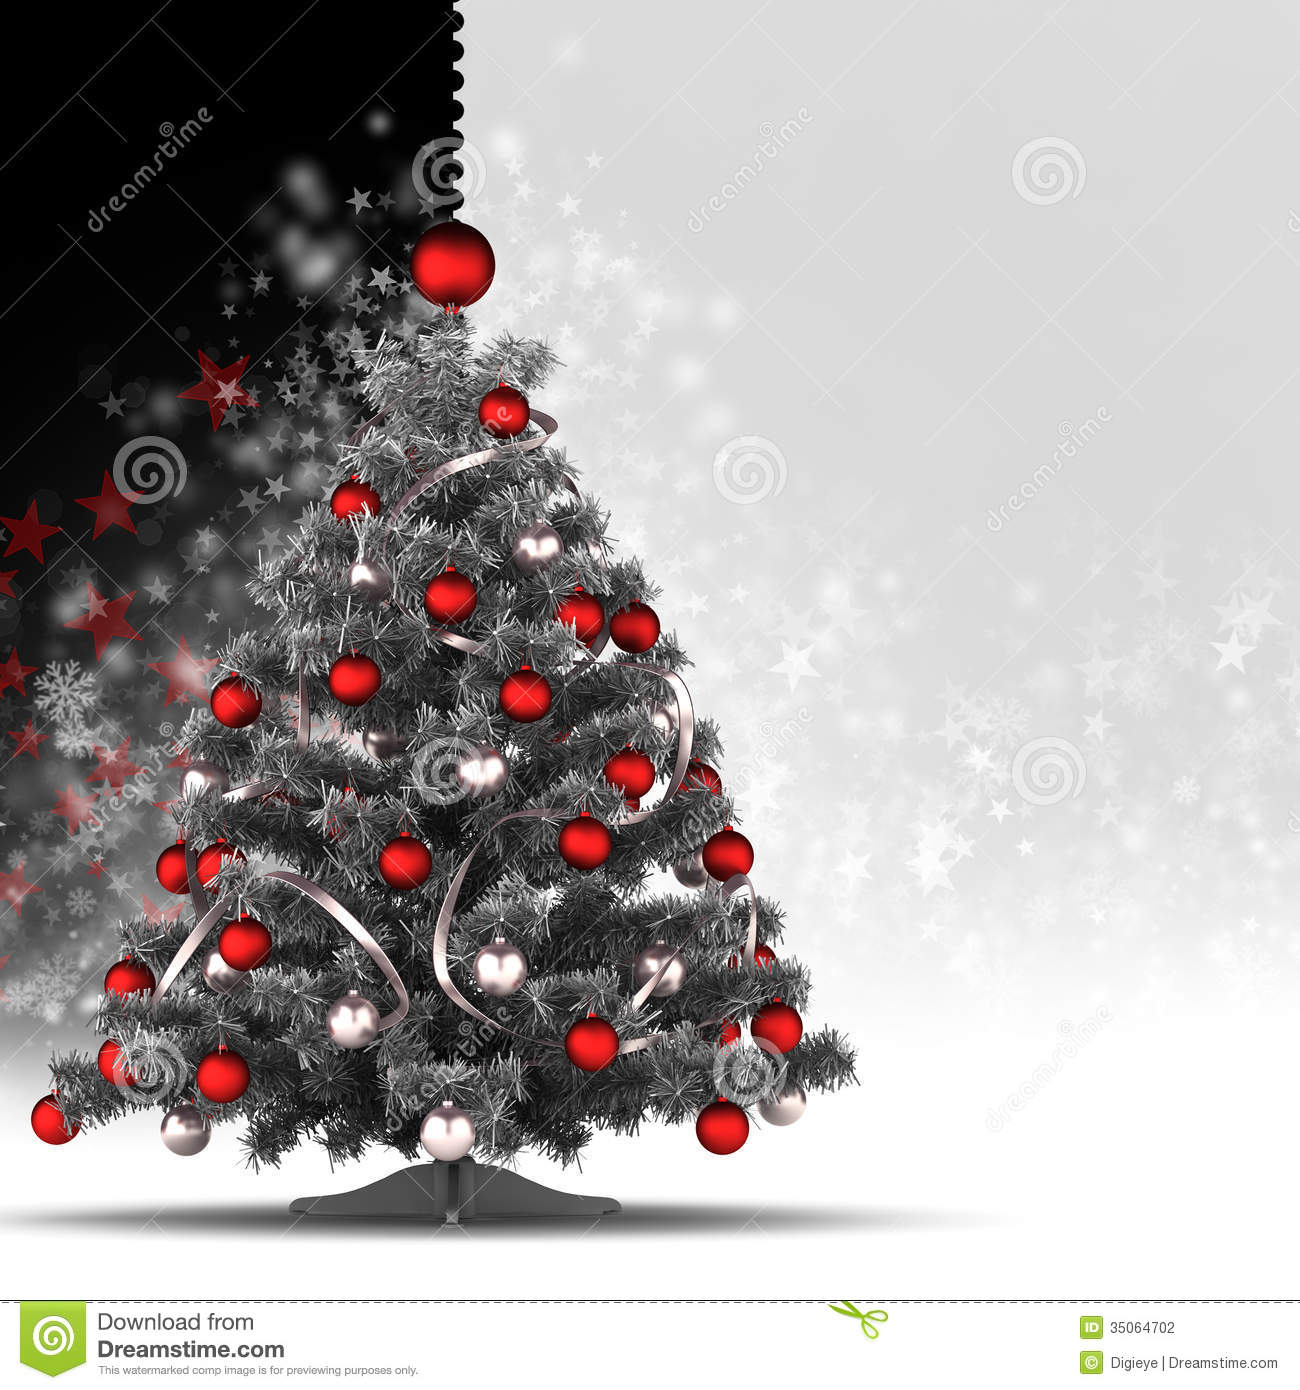 15 black and white christmas card templates psd images for Christmas business card template